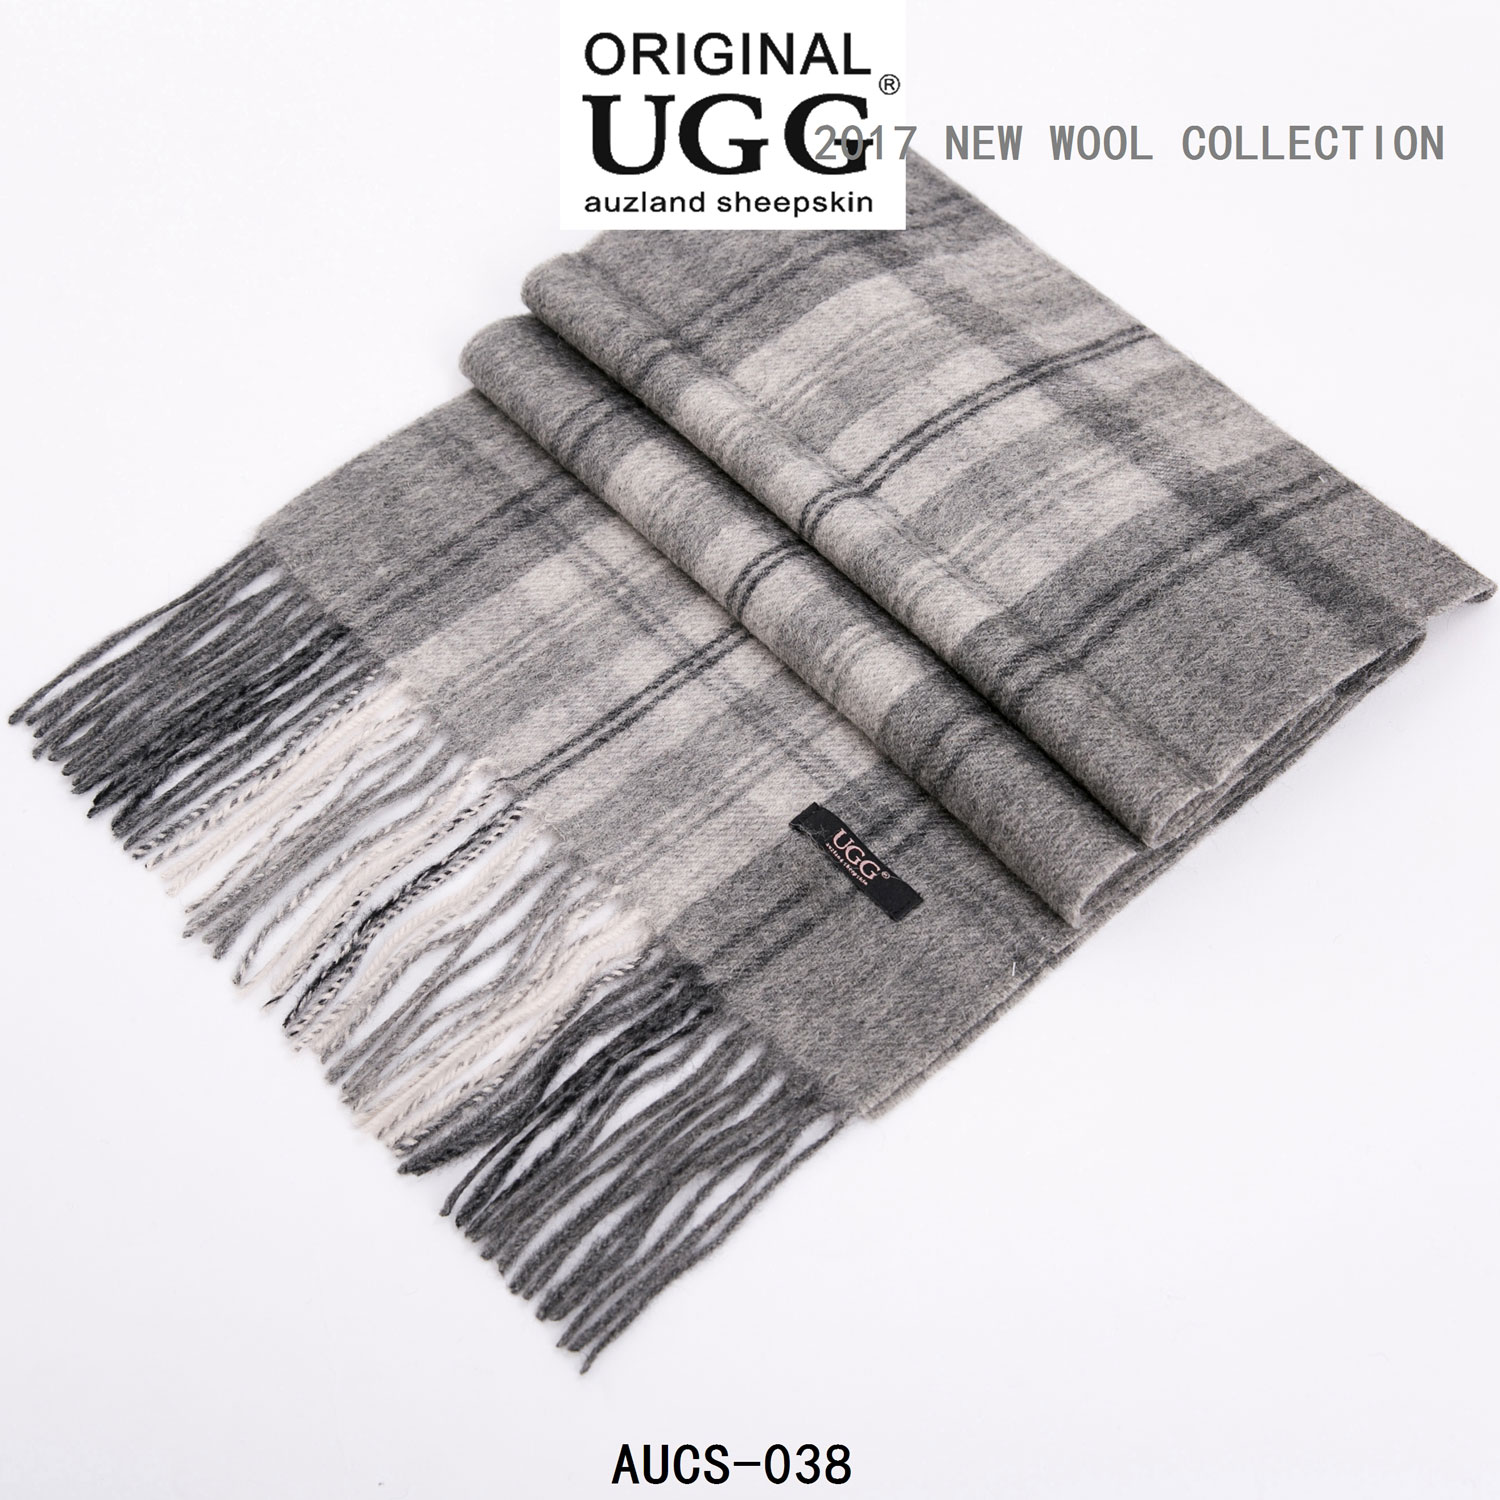 Ugg Auzland Pure Wool Scarf With Fringe Wrap180cm X 30cm Soft It Classic Aussie A Is An Instant Warm And Perfect Gift For Loved One Or Yourself Material 100